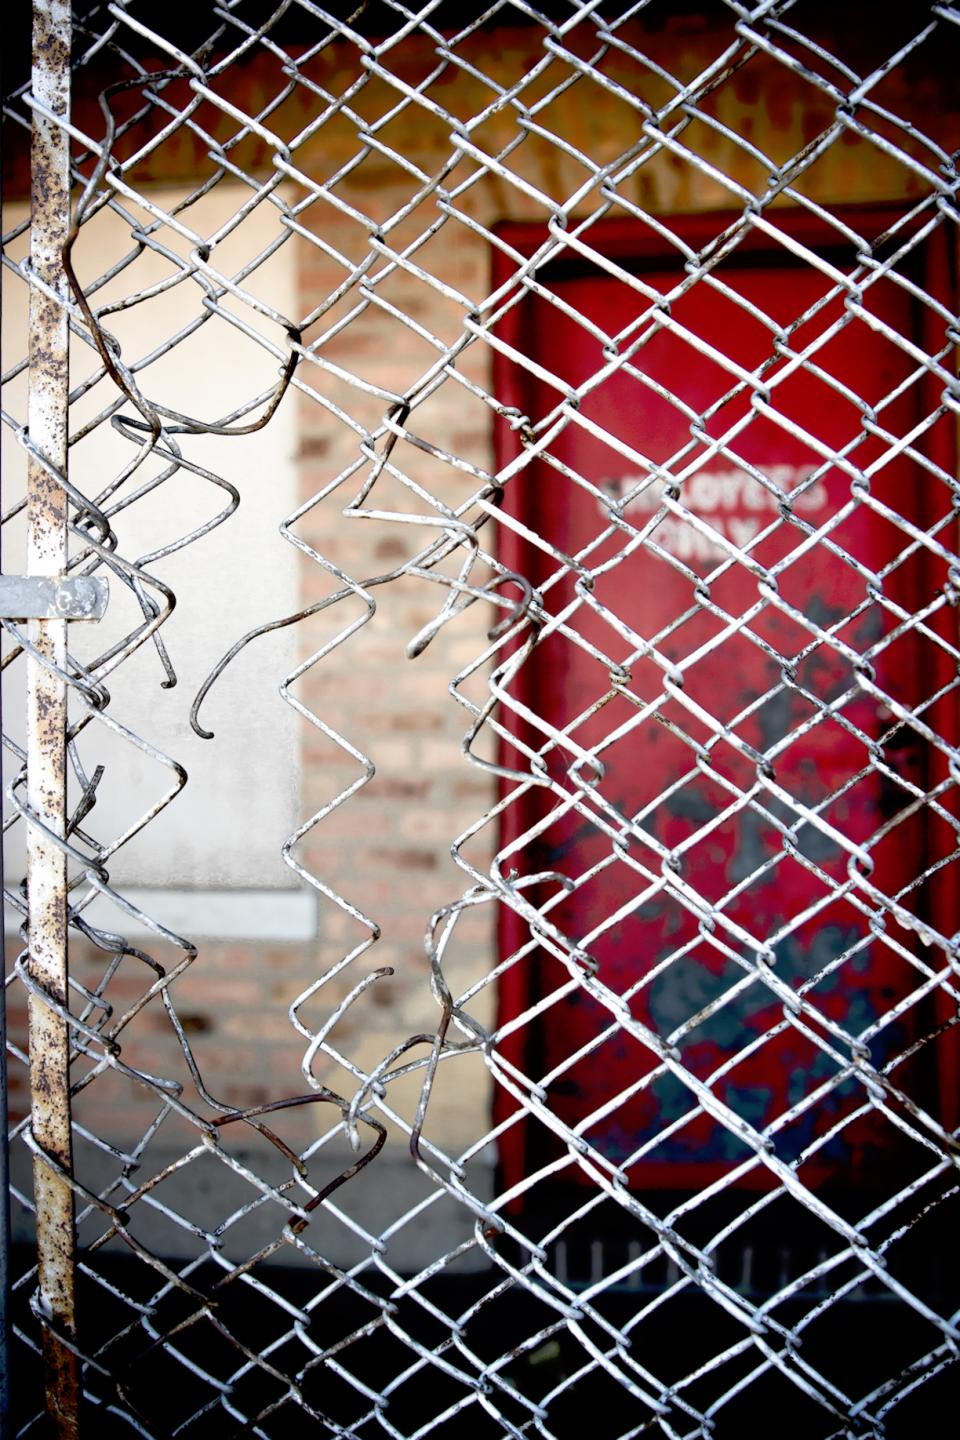 chicken wire fence door red sign